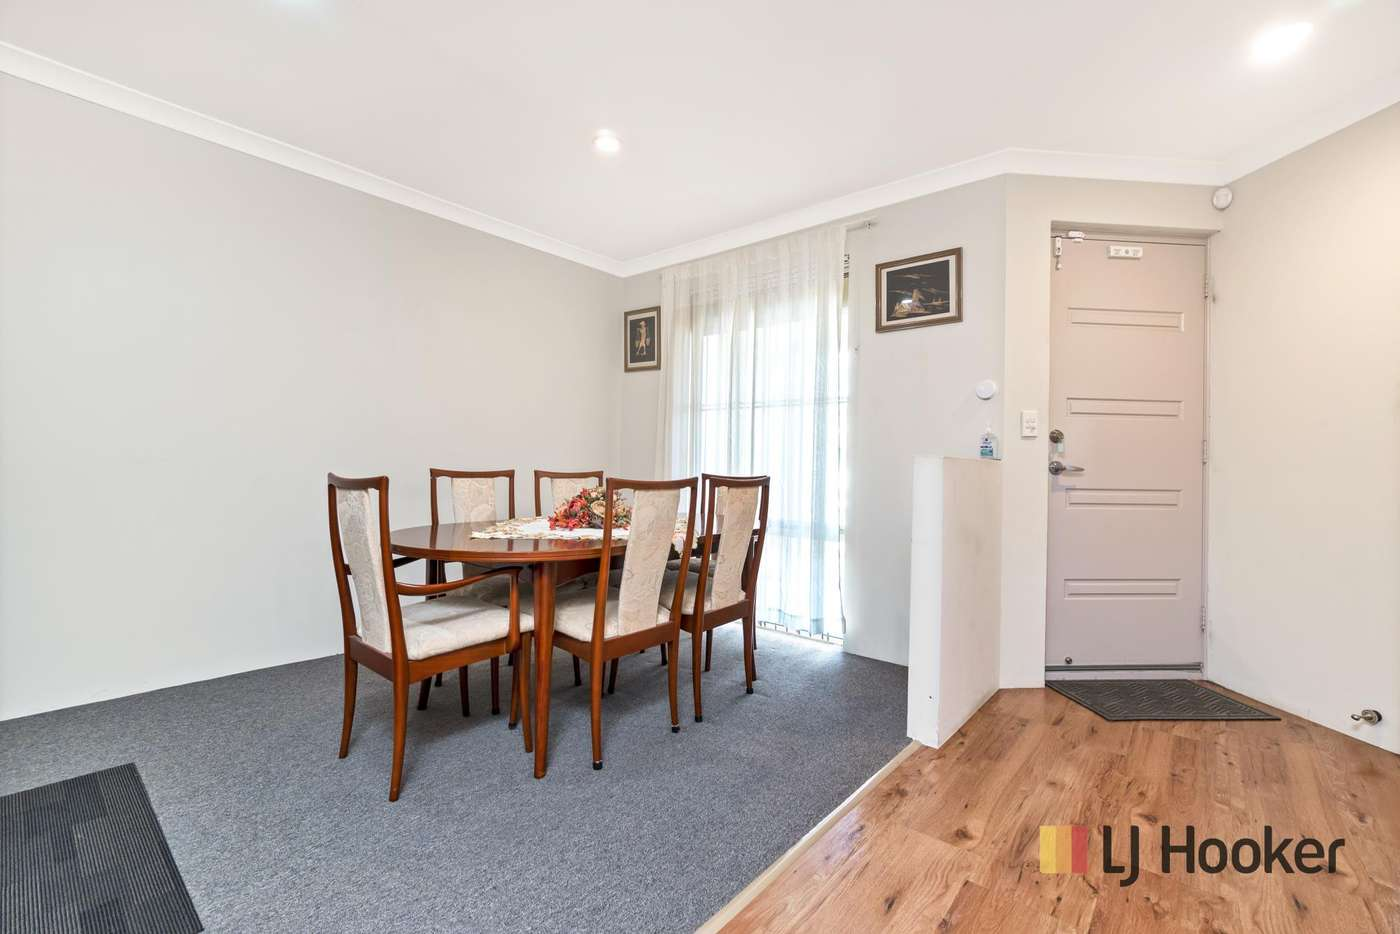 Seventh view of Homely house listing, 23 Cheriton Avenue, Ellenbrook WA 6069